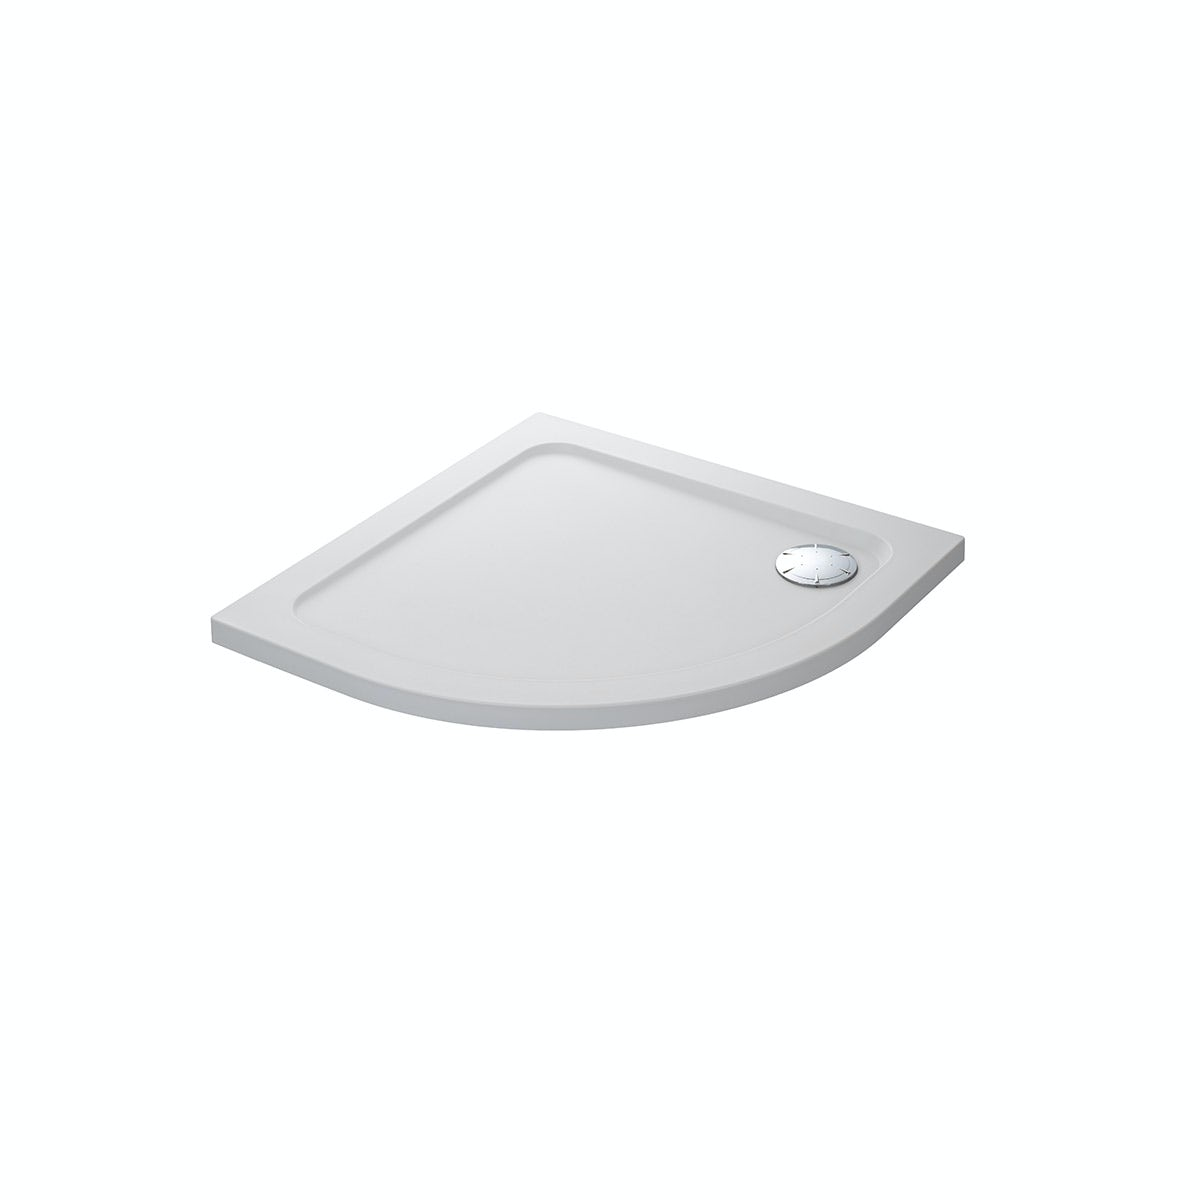 Mira Flight Safe low level anti-slip quadrant shower tray